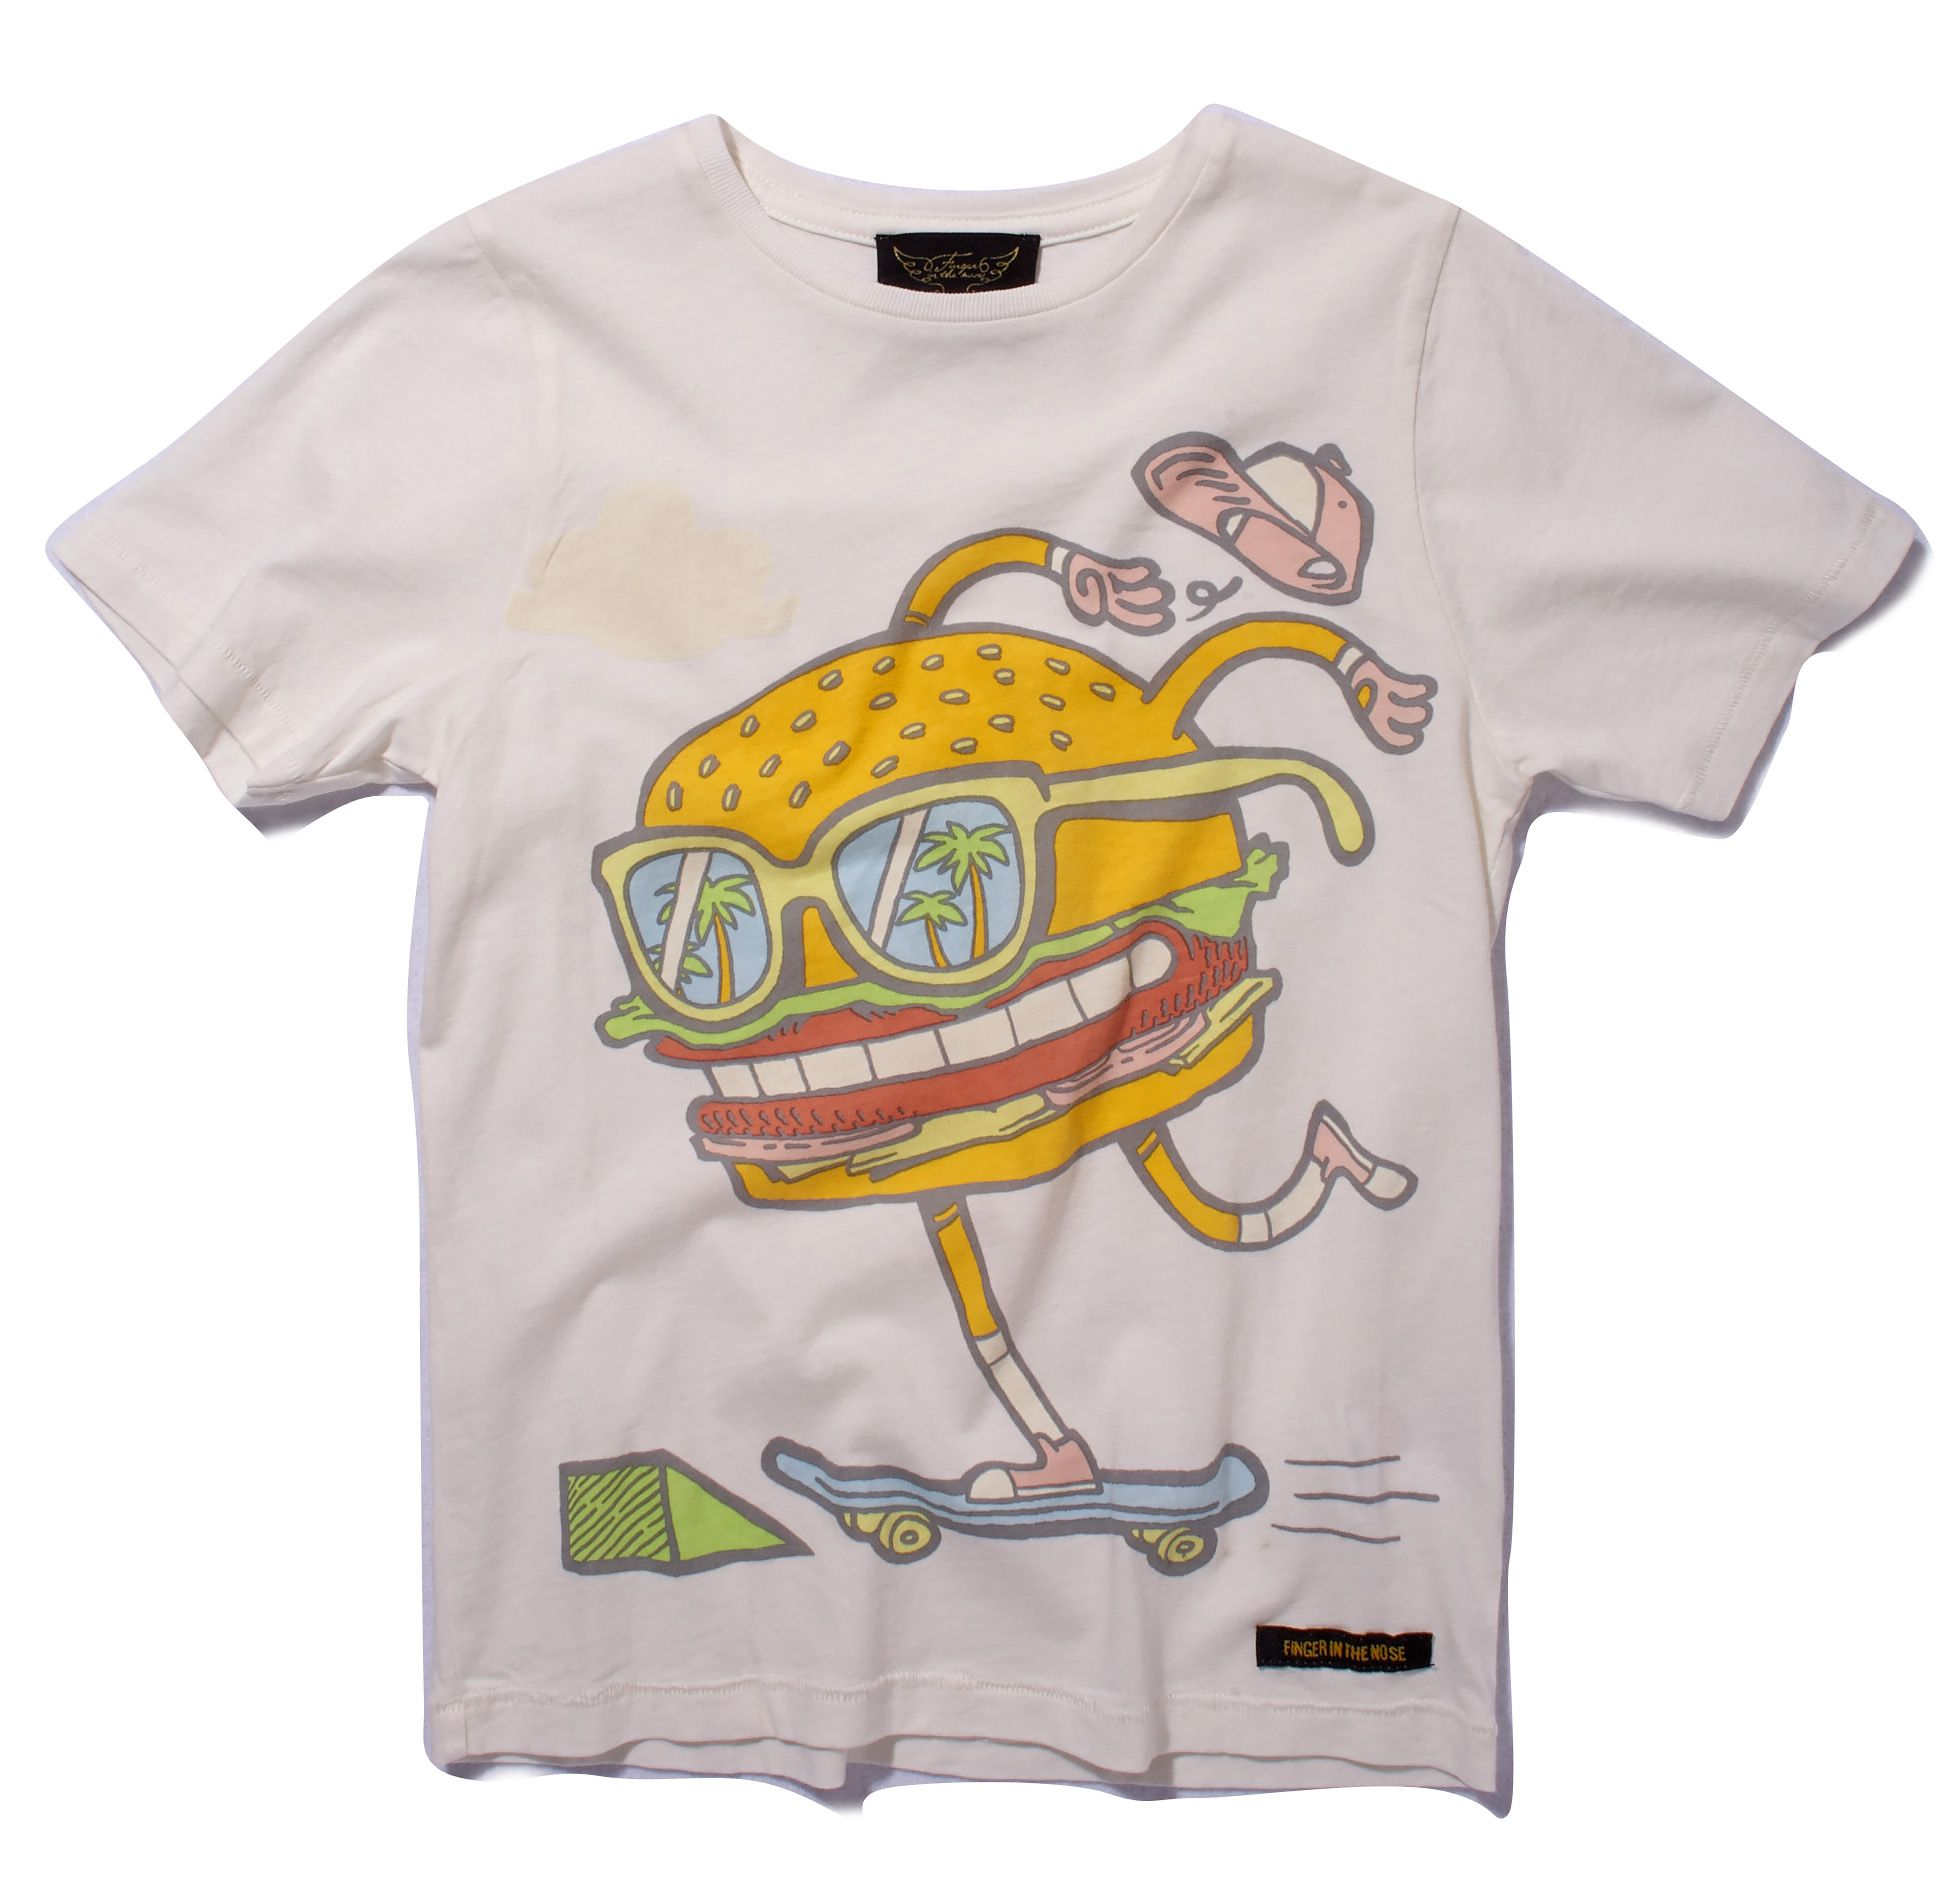 Sale - Dalton Arty Skater T-Shirt - Finger in the nose Finger in the Nose Shop For For Sale Pay With Visa reupK6